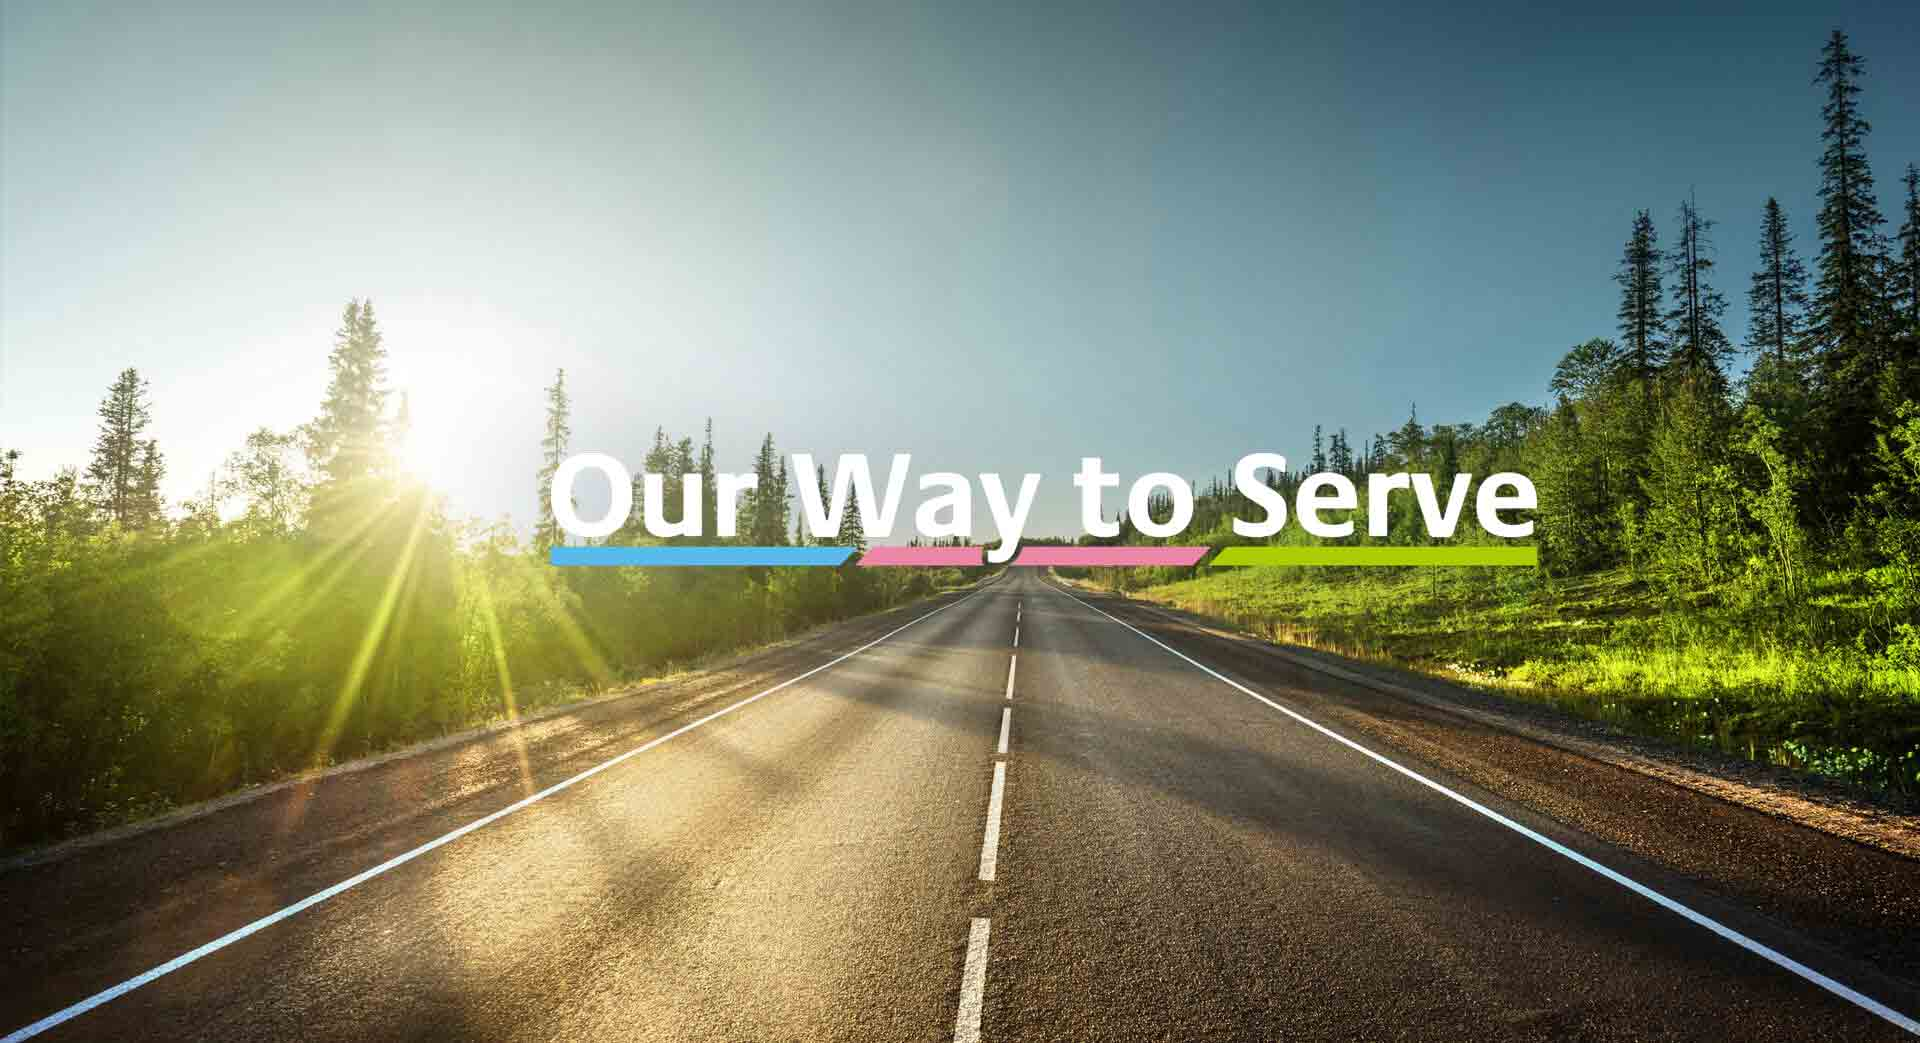 Our Way to Serve